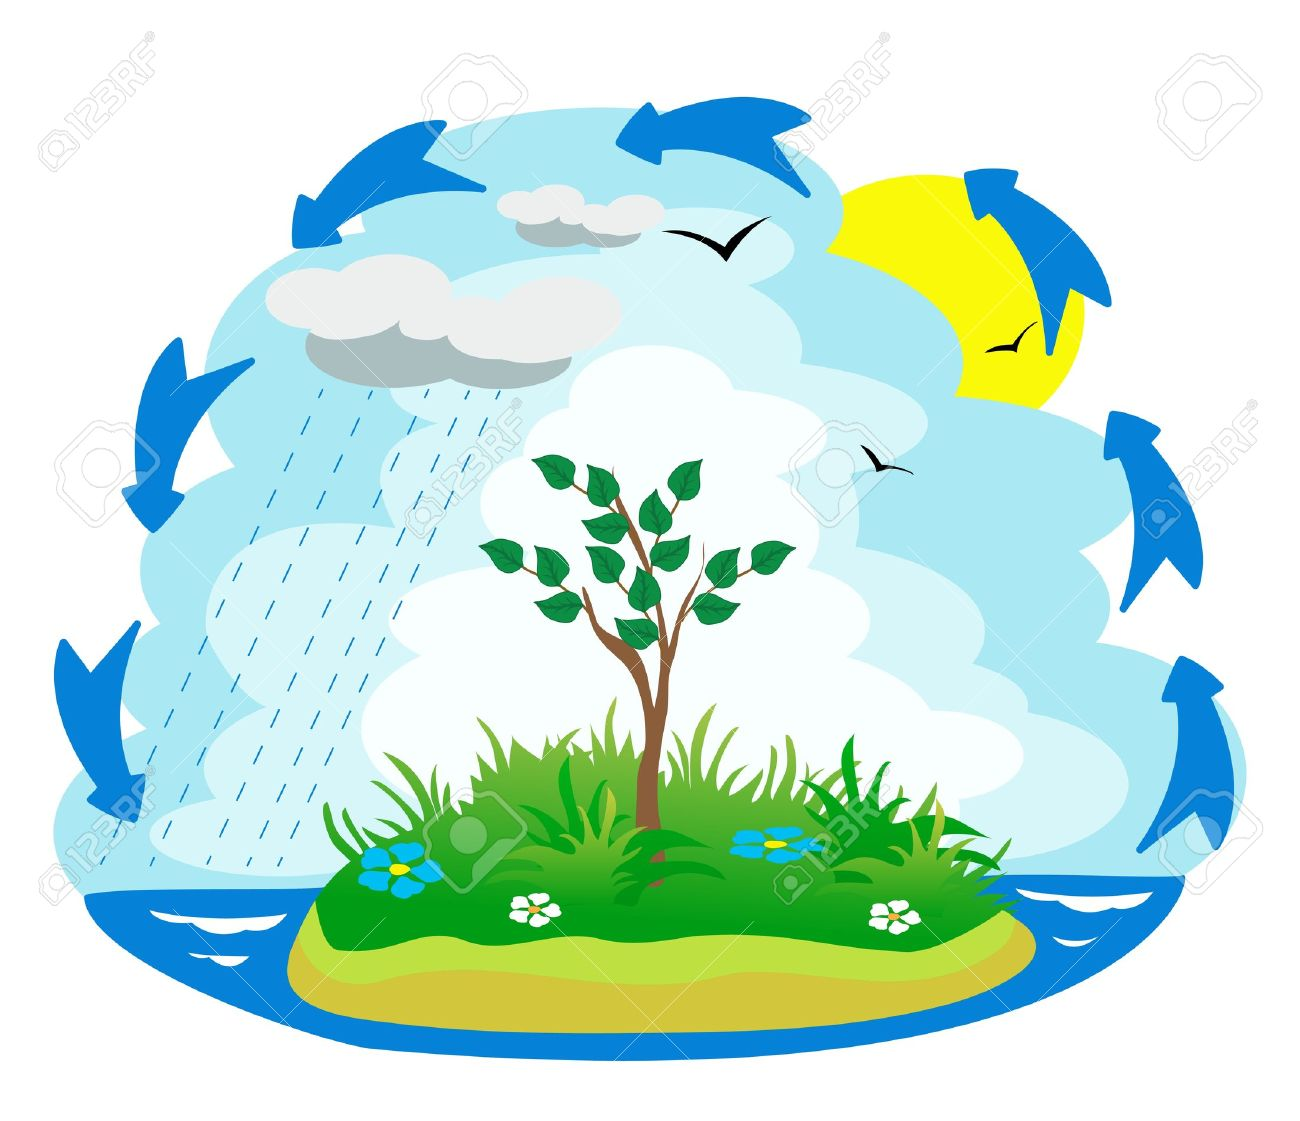 Illustration of the water cycle - 12680599